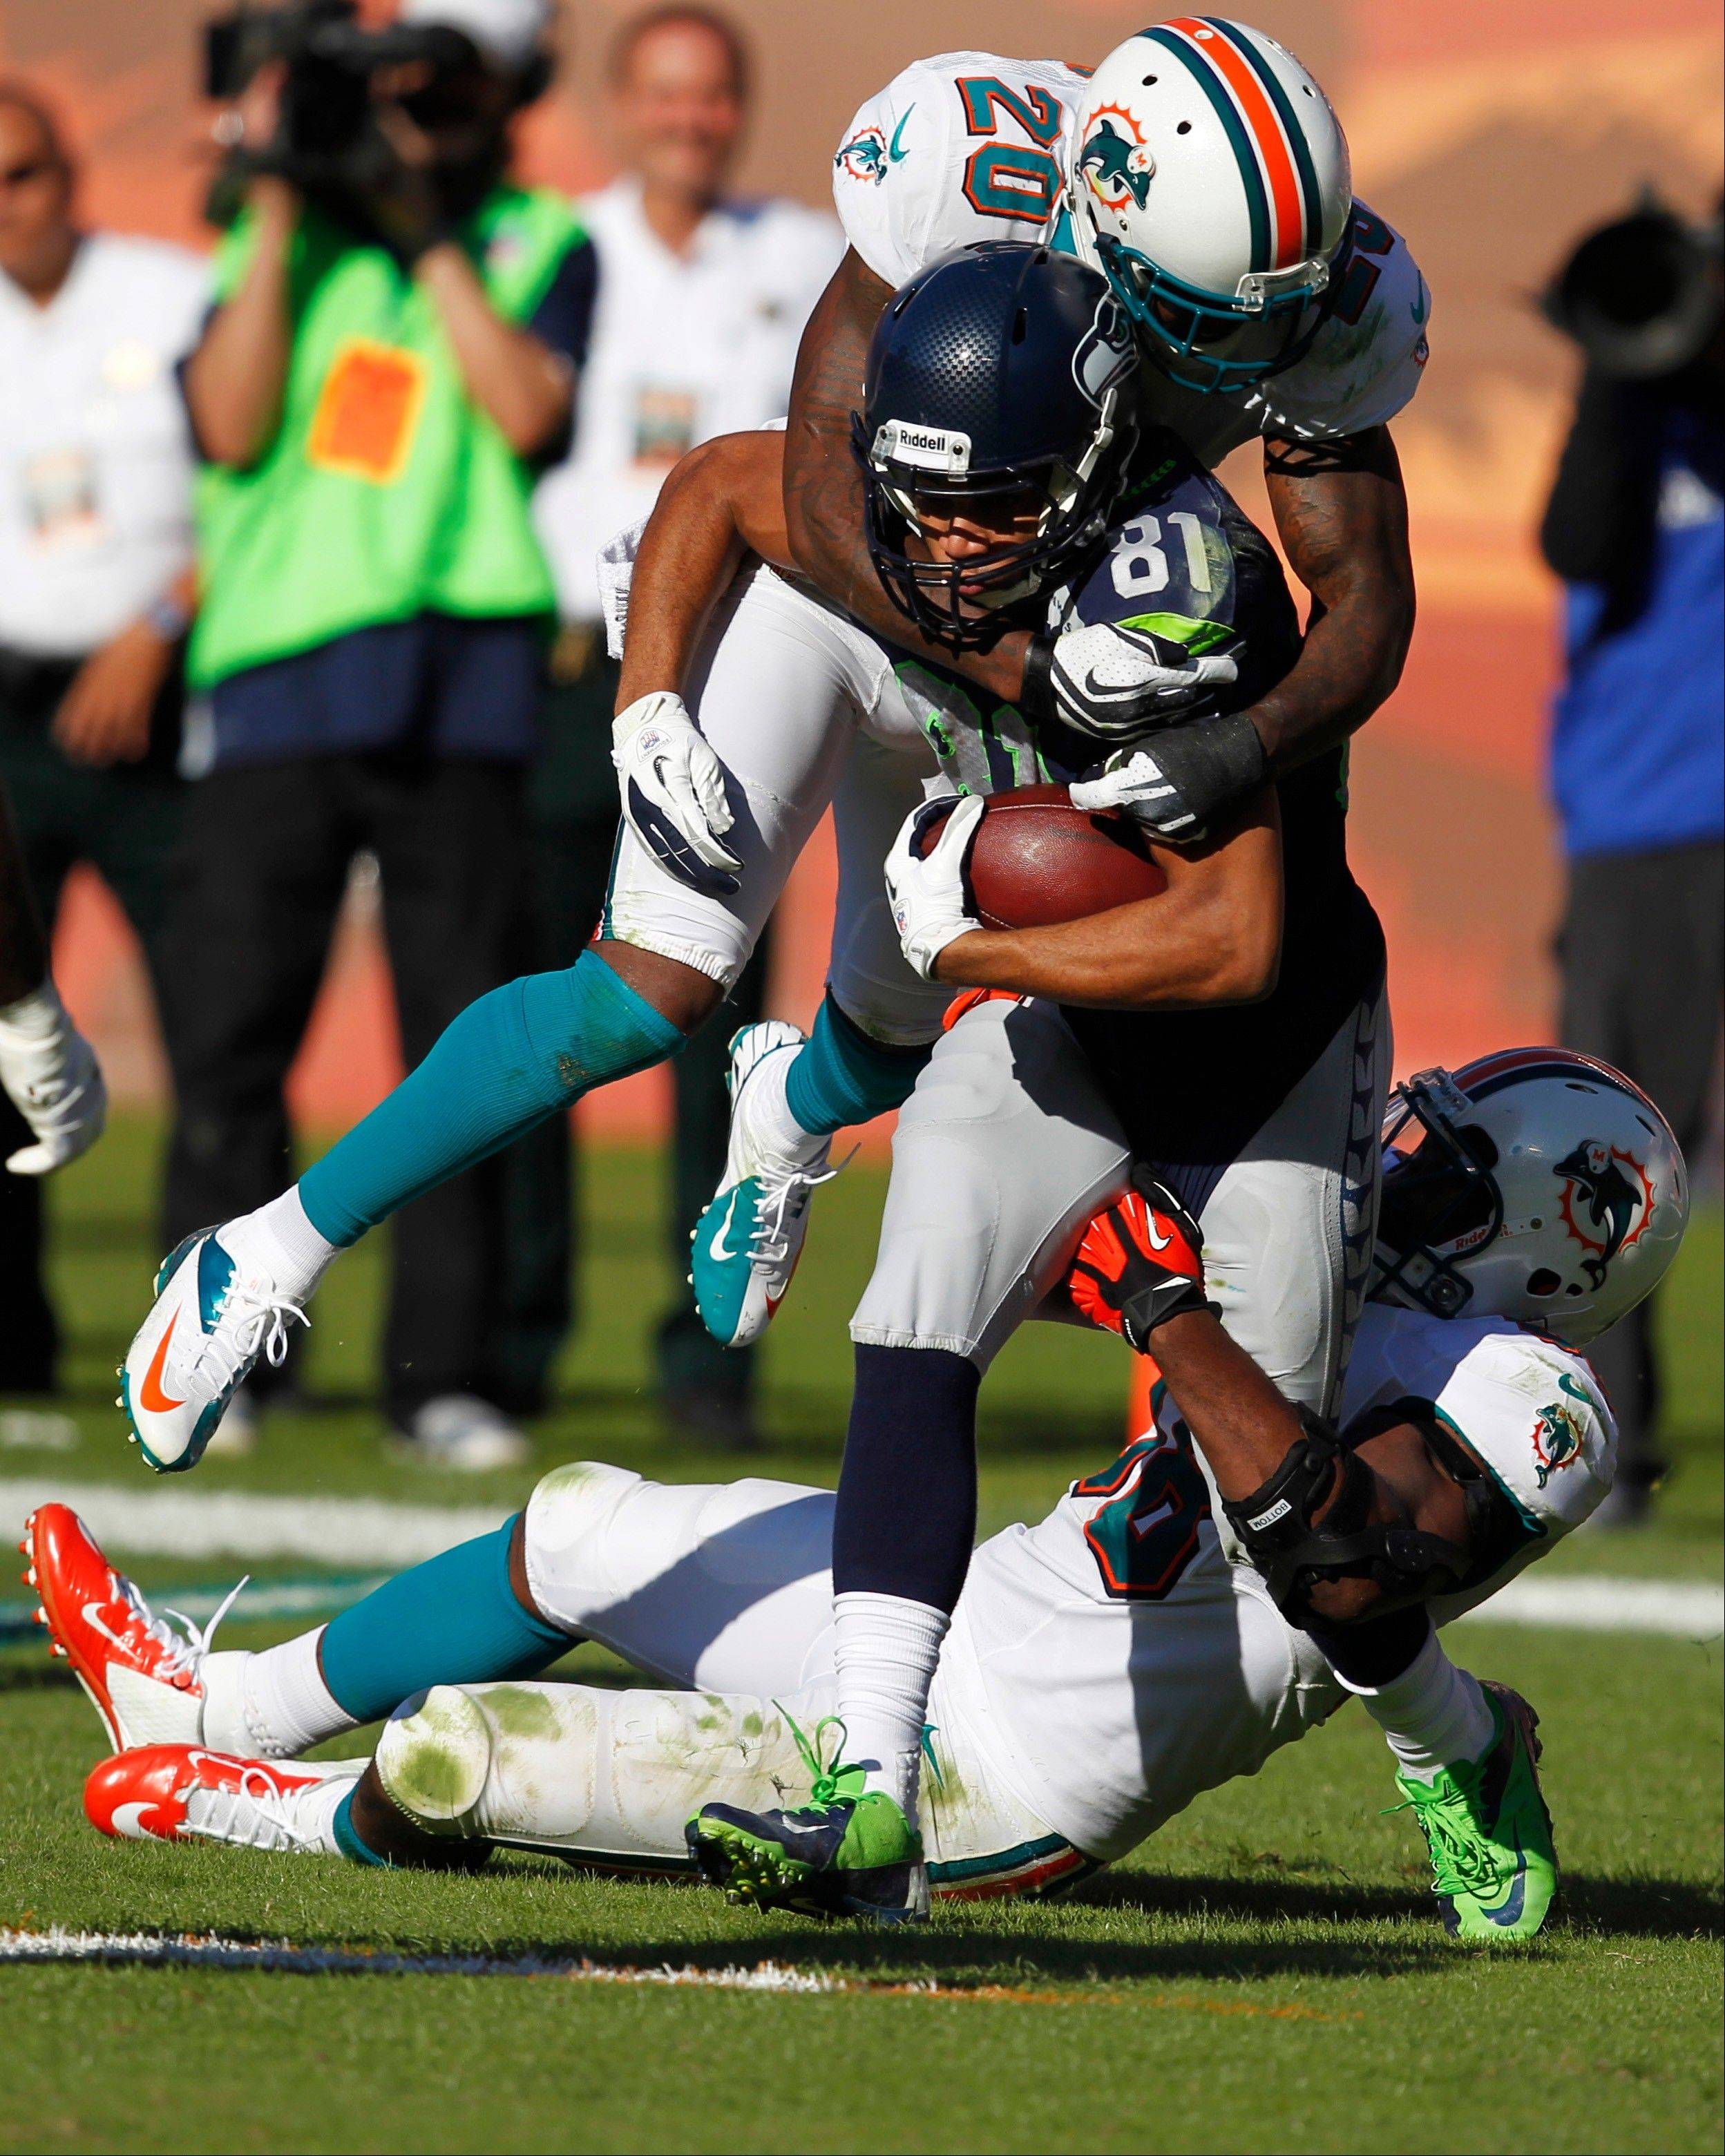 Seahawks wide receiver Golden Tate (81) is tackled by free safety Reshad Jones (20) and linebacker Kevin Burnett (56 )during the second half of an NFL football game Sunday, Nov. 25, 2012 in Miami.